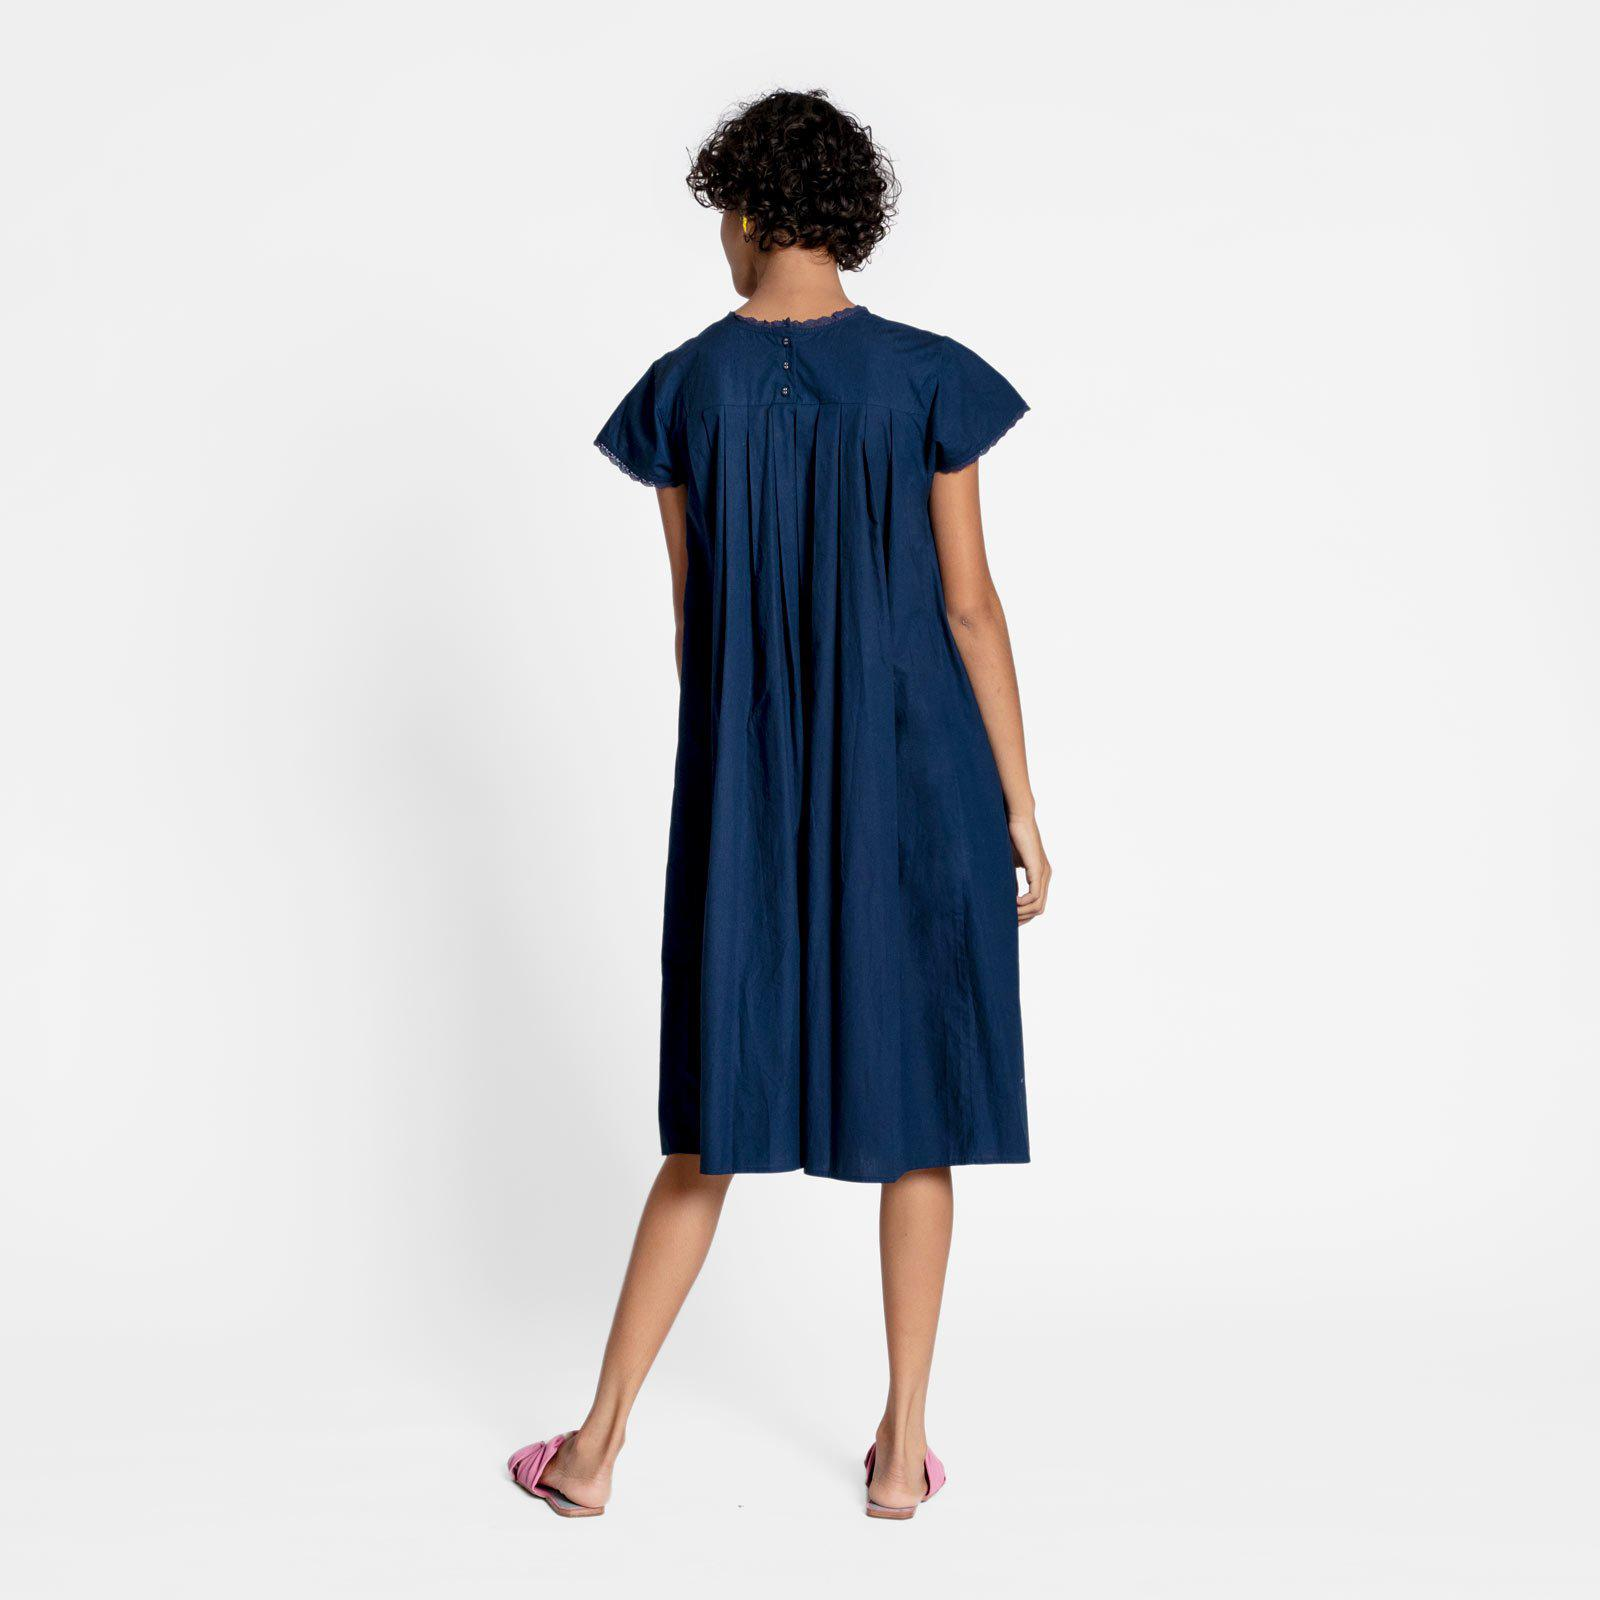 Floral Garland Embroidered Dress Navy 2